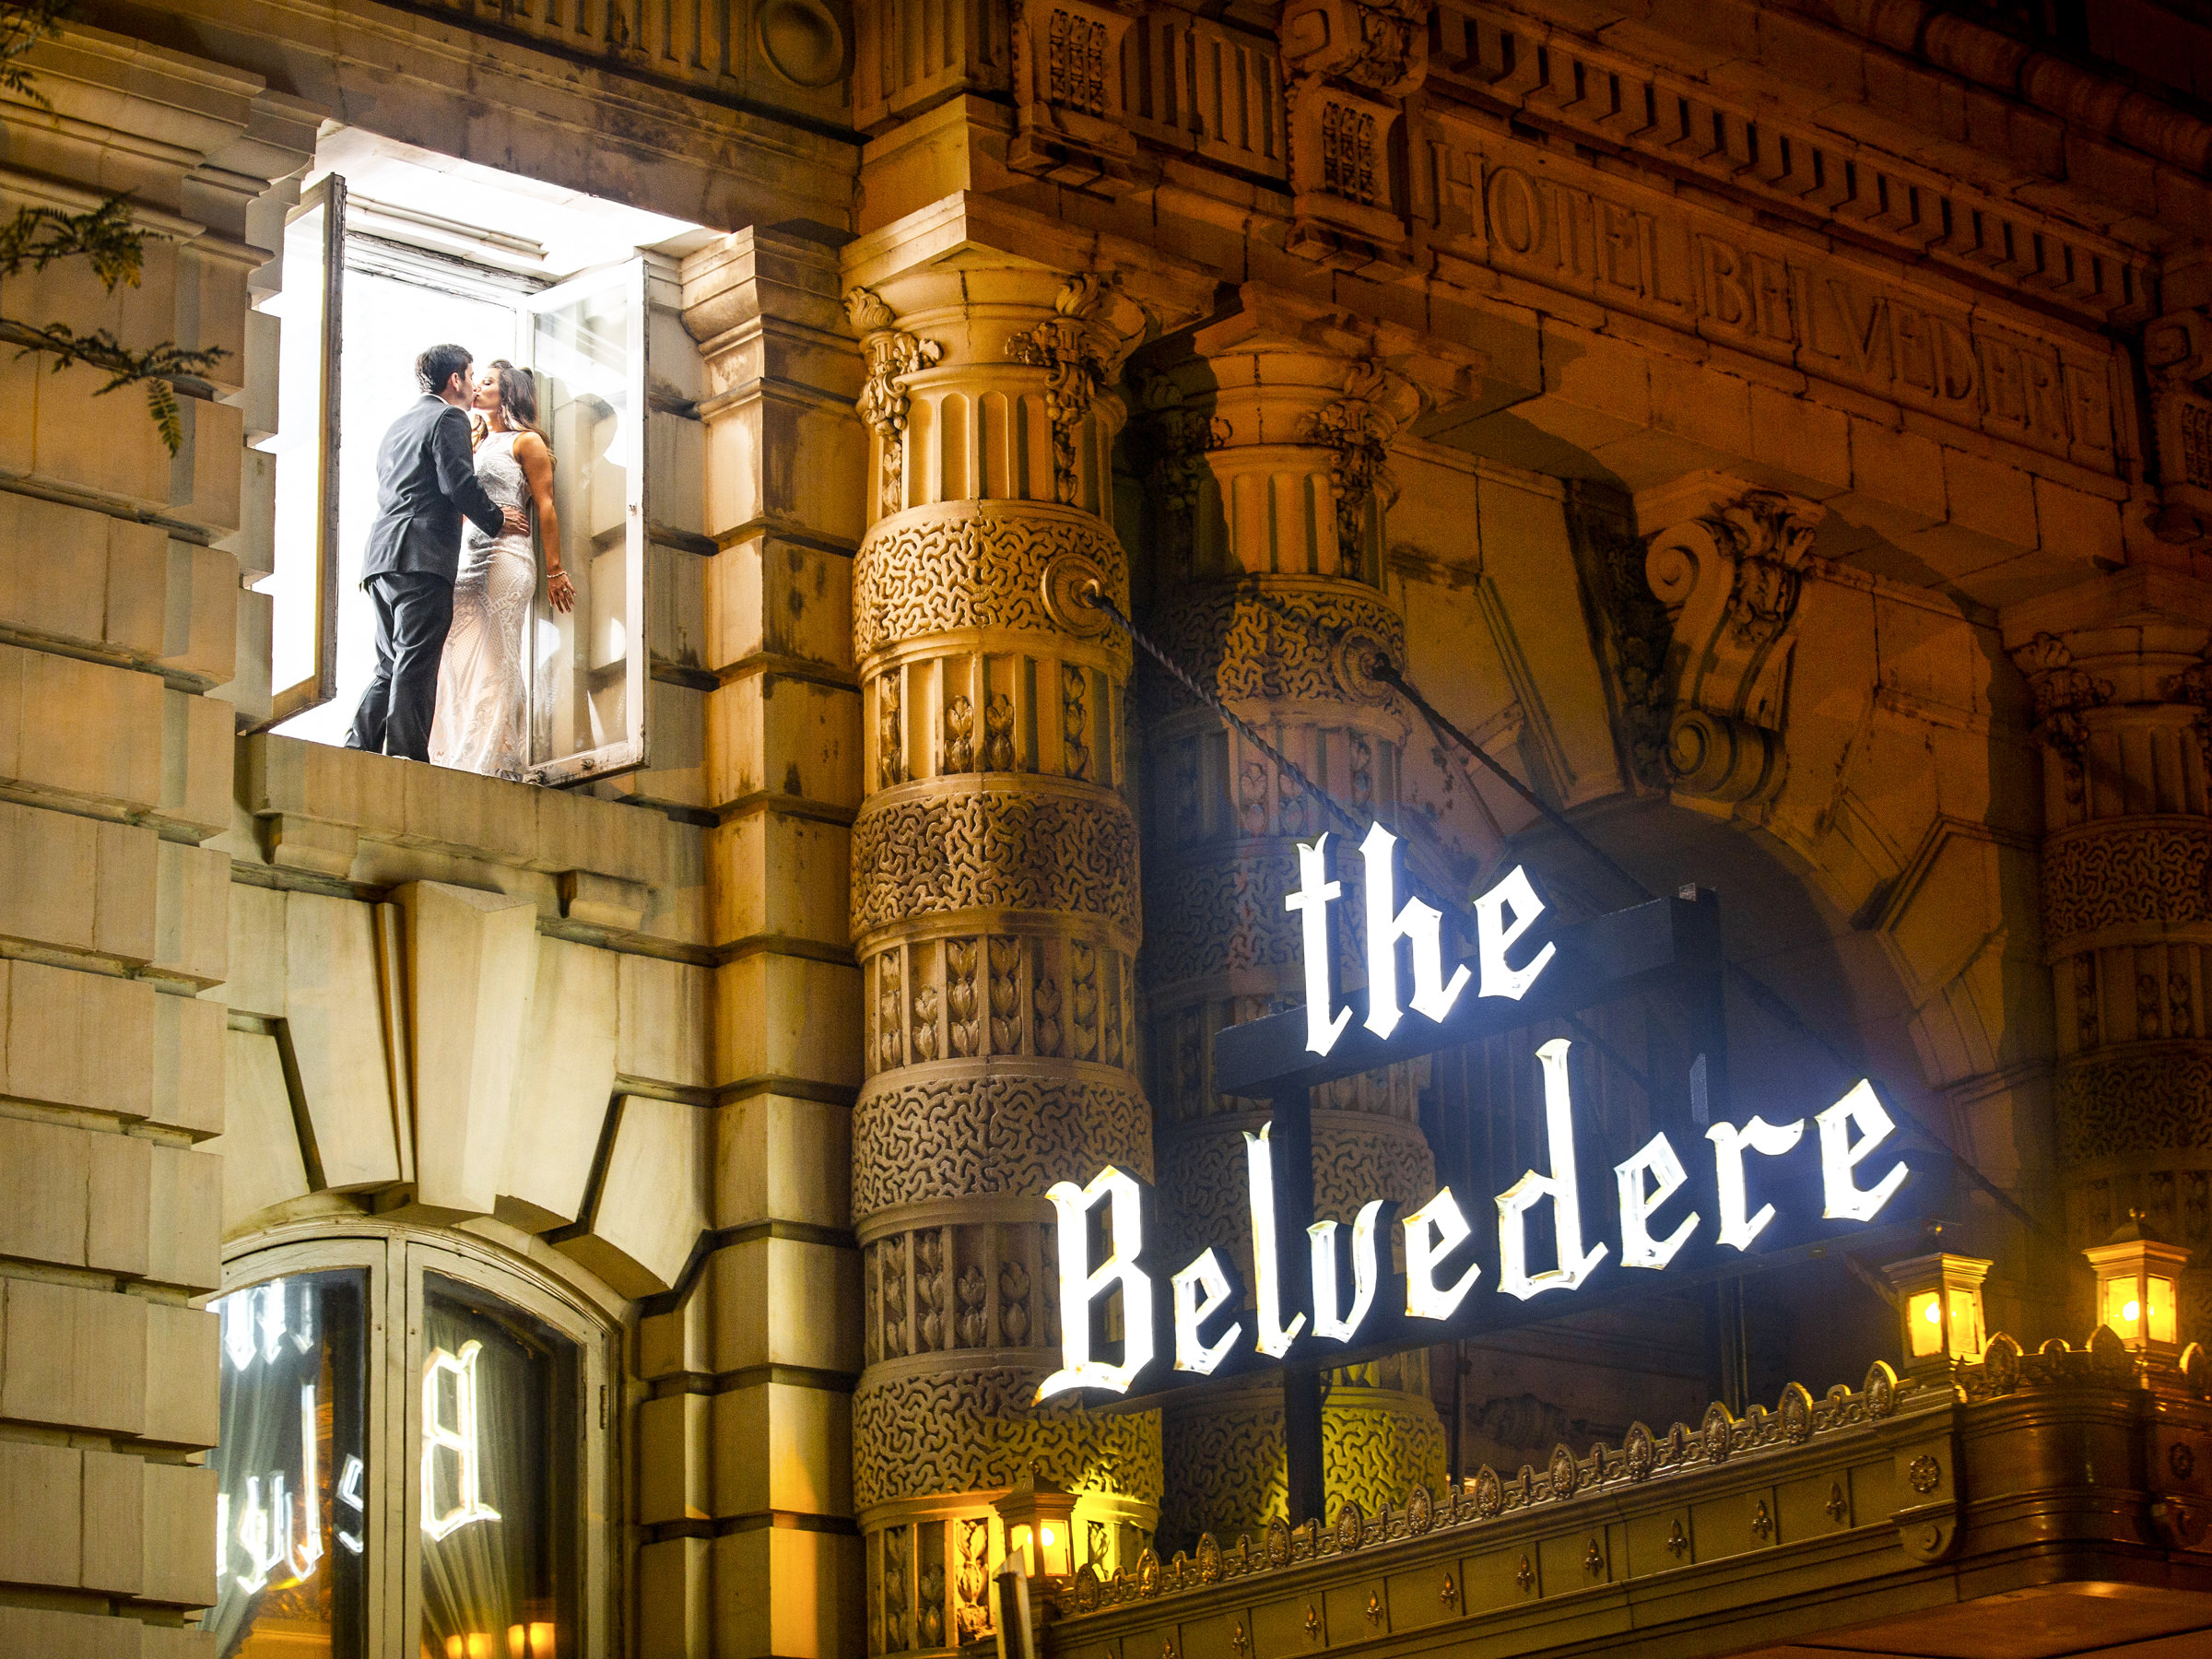 Couple at the window of the Belvedere Hotel - photo by Anna Scmidt - DC